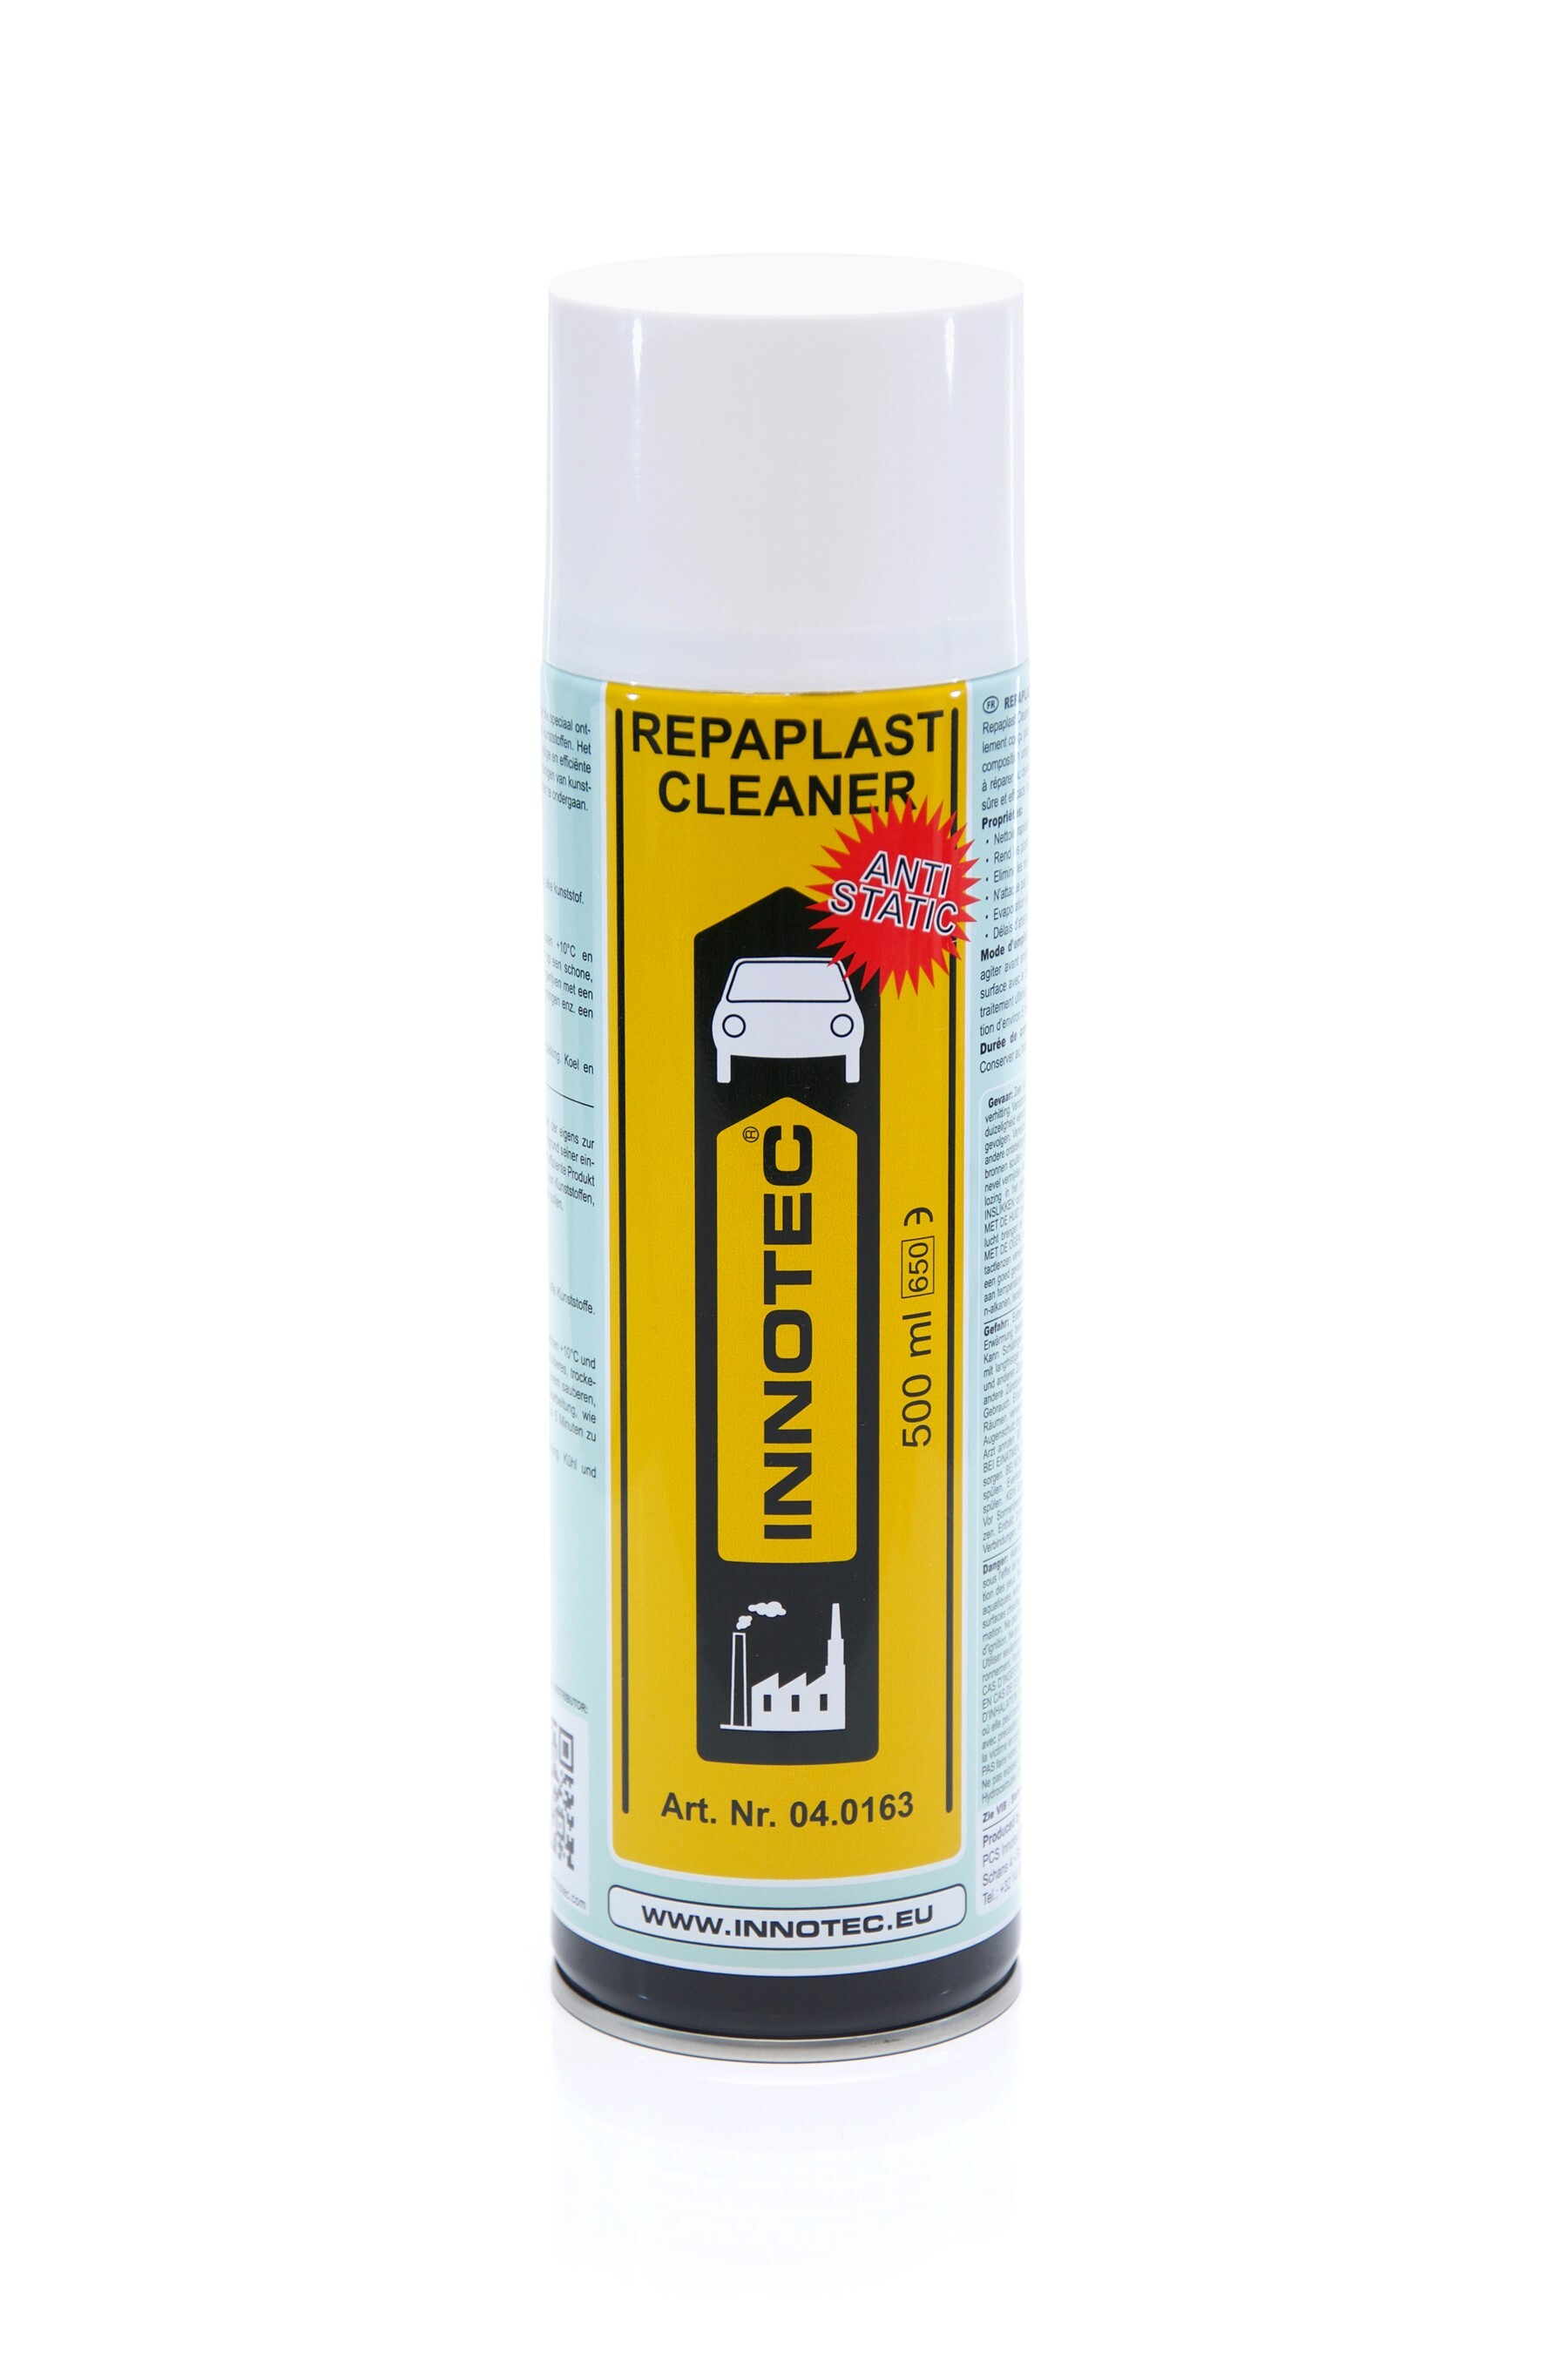 1250 Repaplast Cleaner AS 500ml